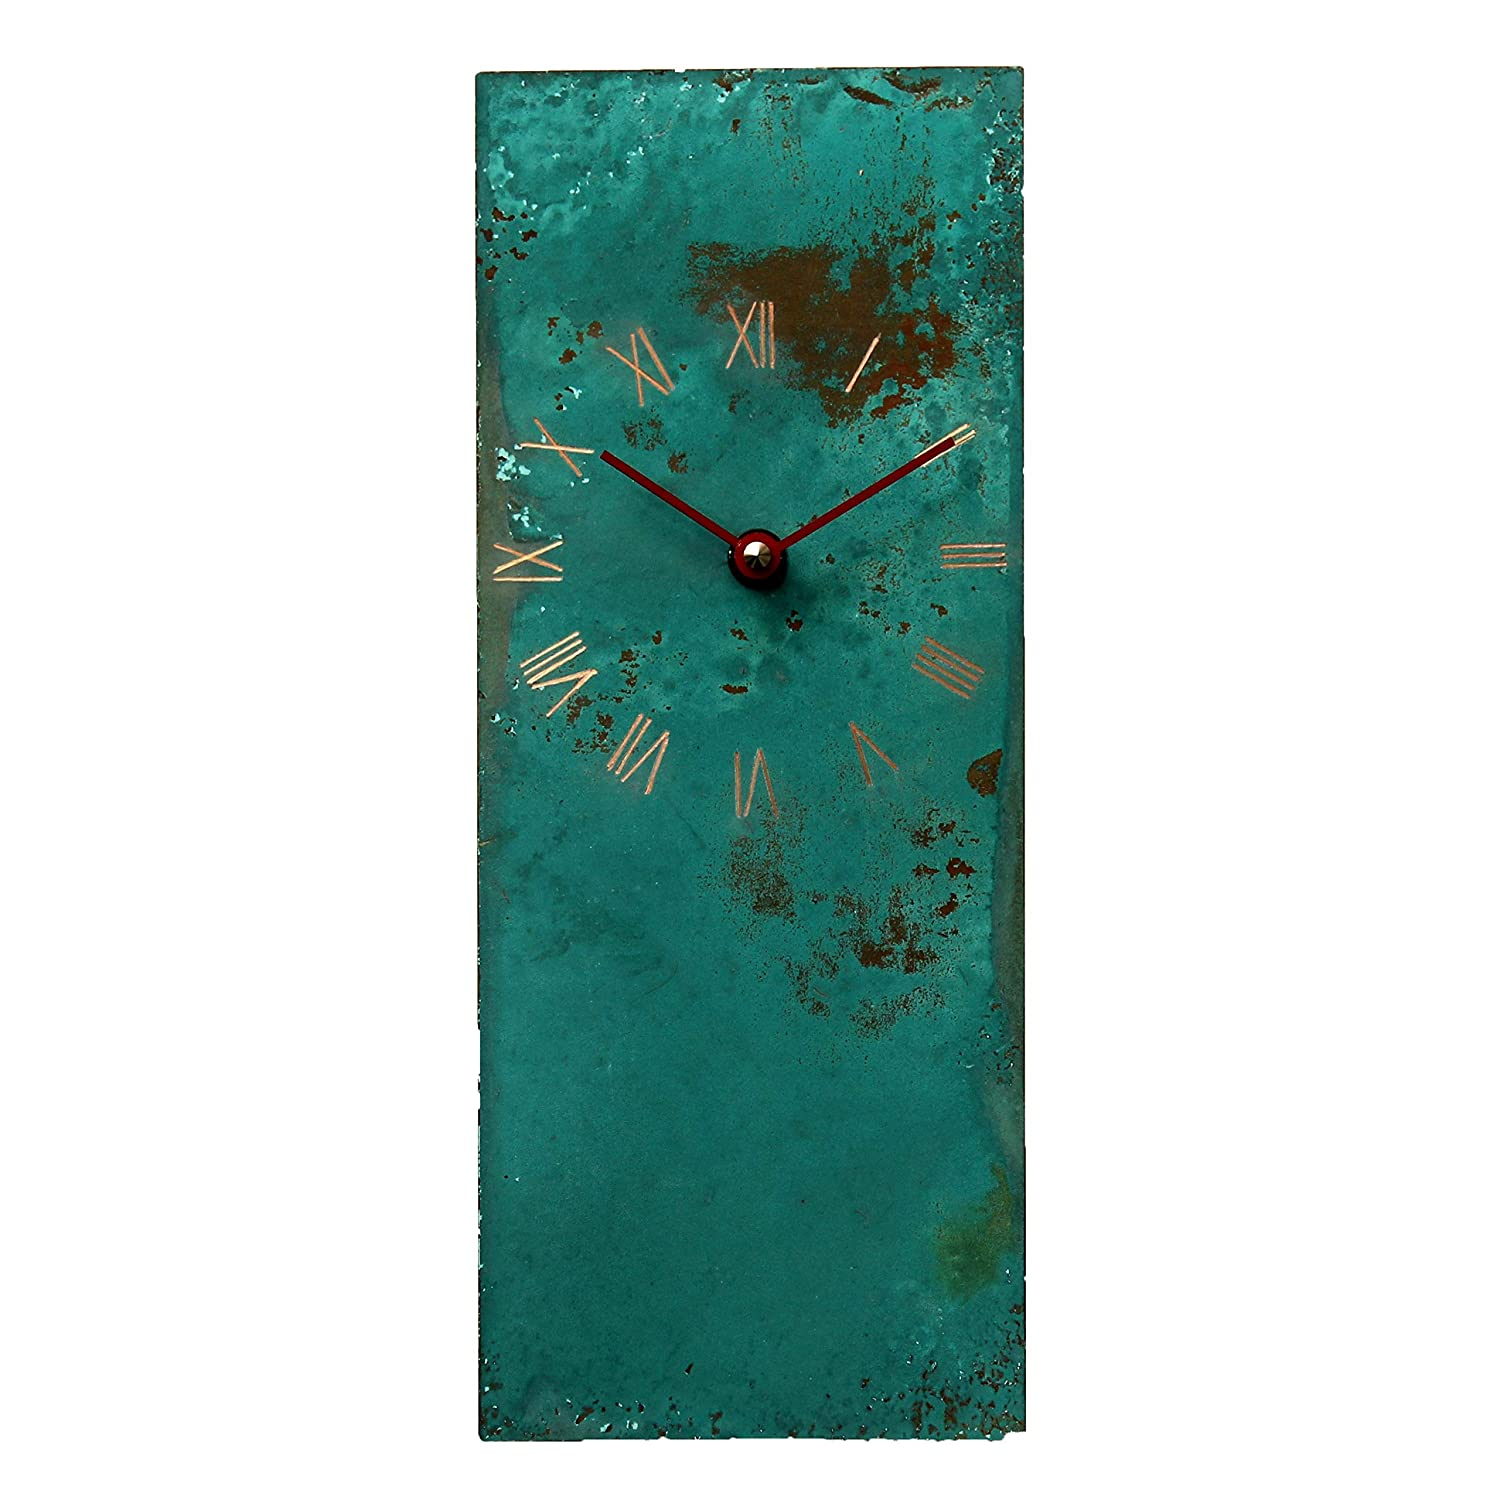 Turquoise Copper Rustic Rectangle Wall Clock 12-inch - Silent Non Ticking Gift for Home/Office/Kitchen/Bedroom/Living Room